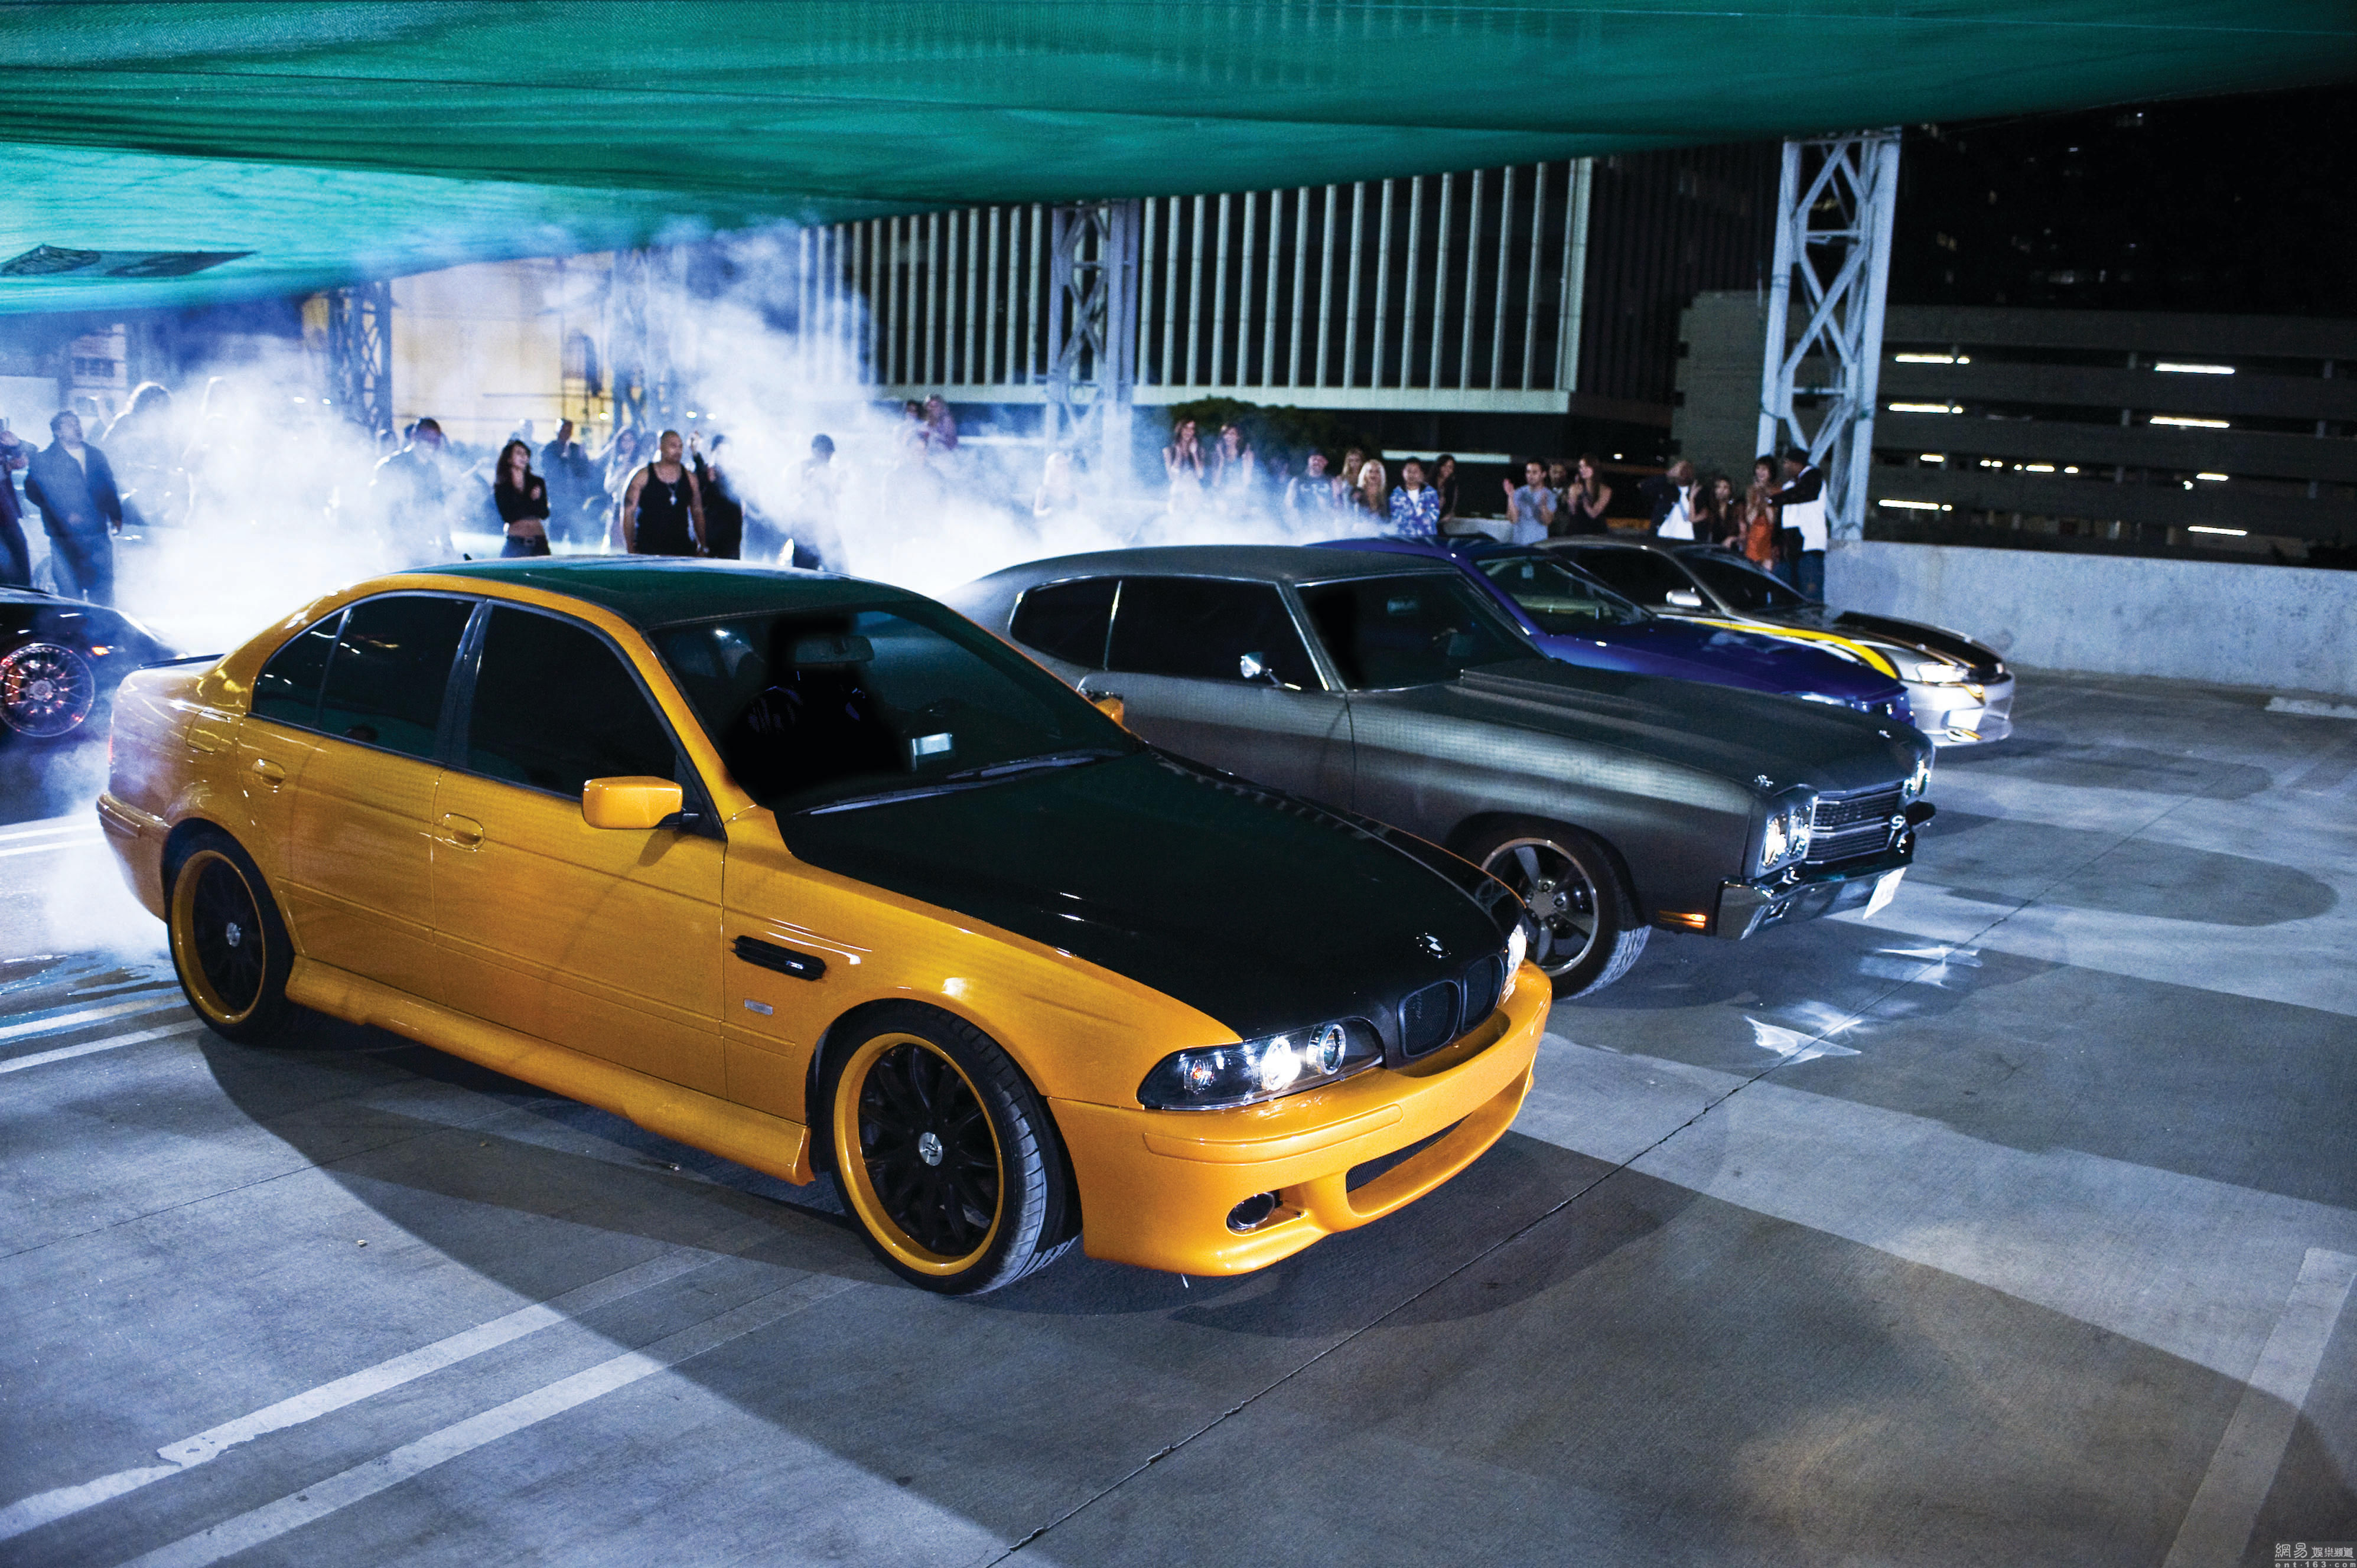 Street Race Cars >> The Fast And The Furious Films Might Cause An Increase In